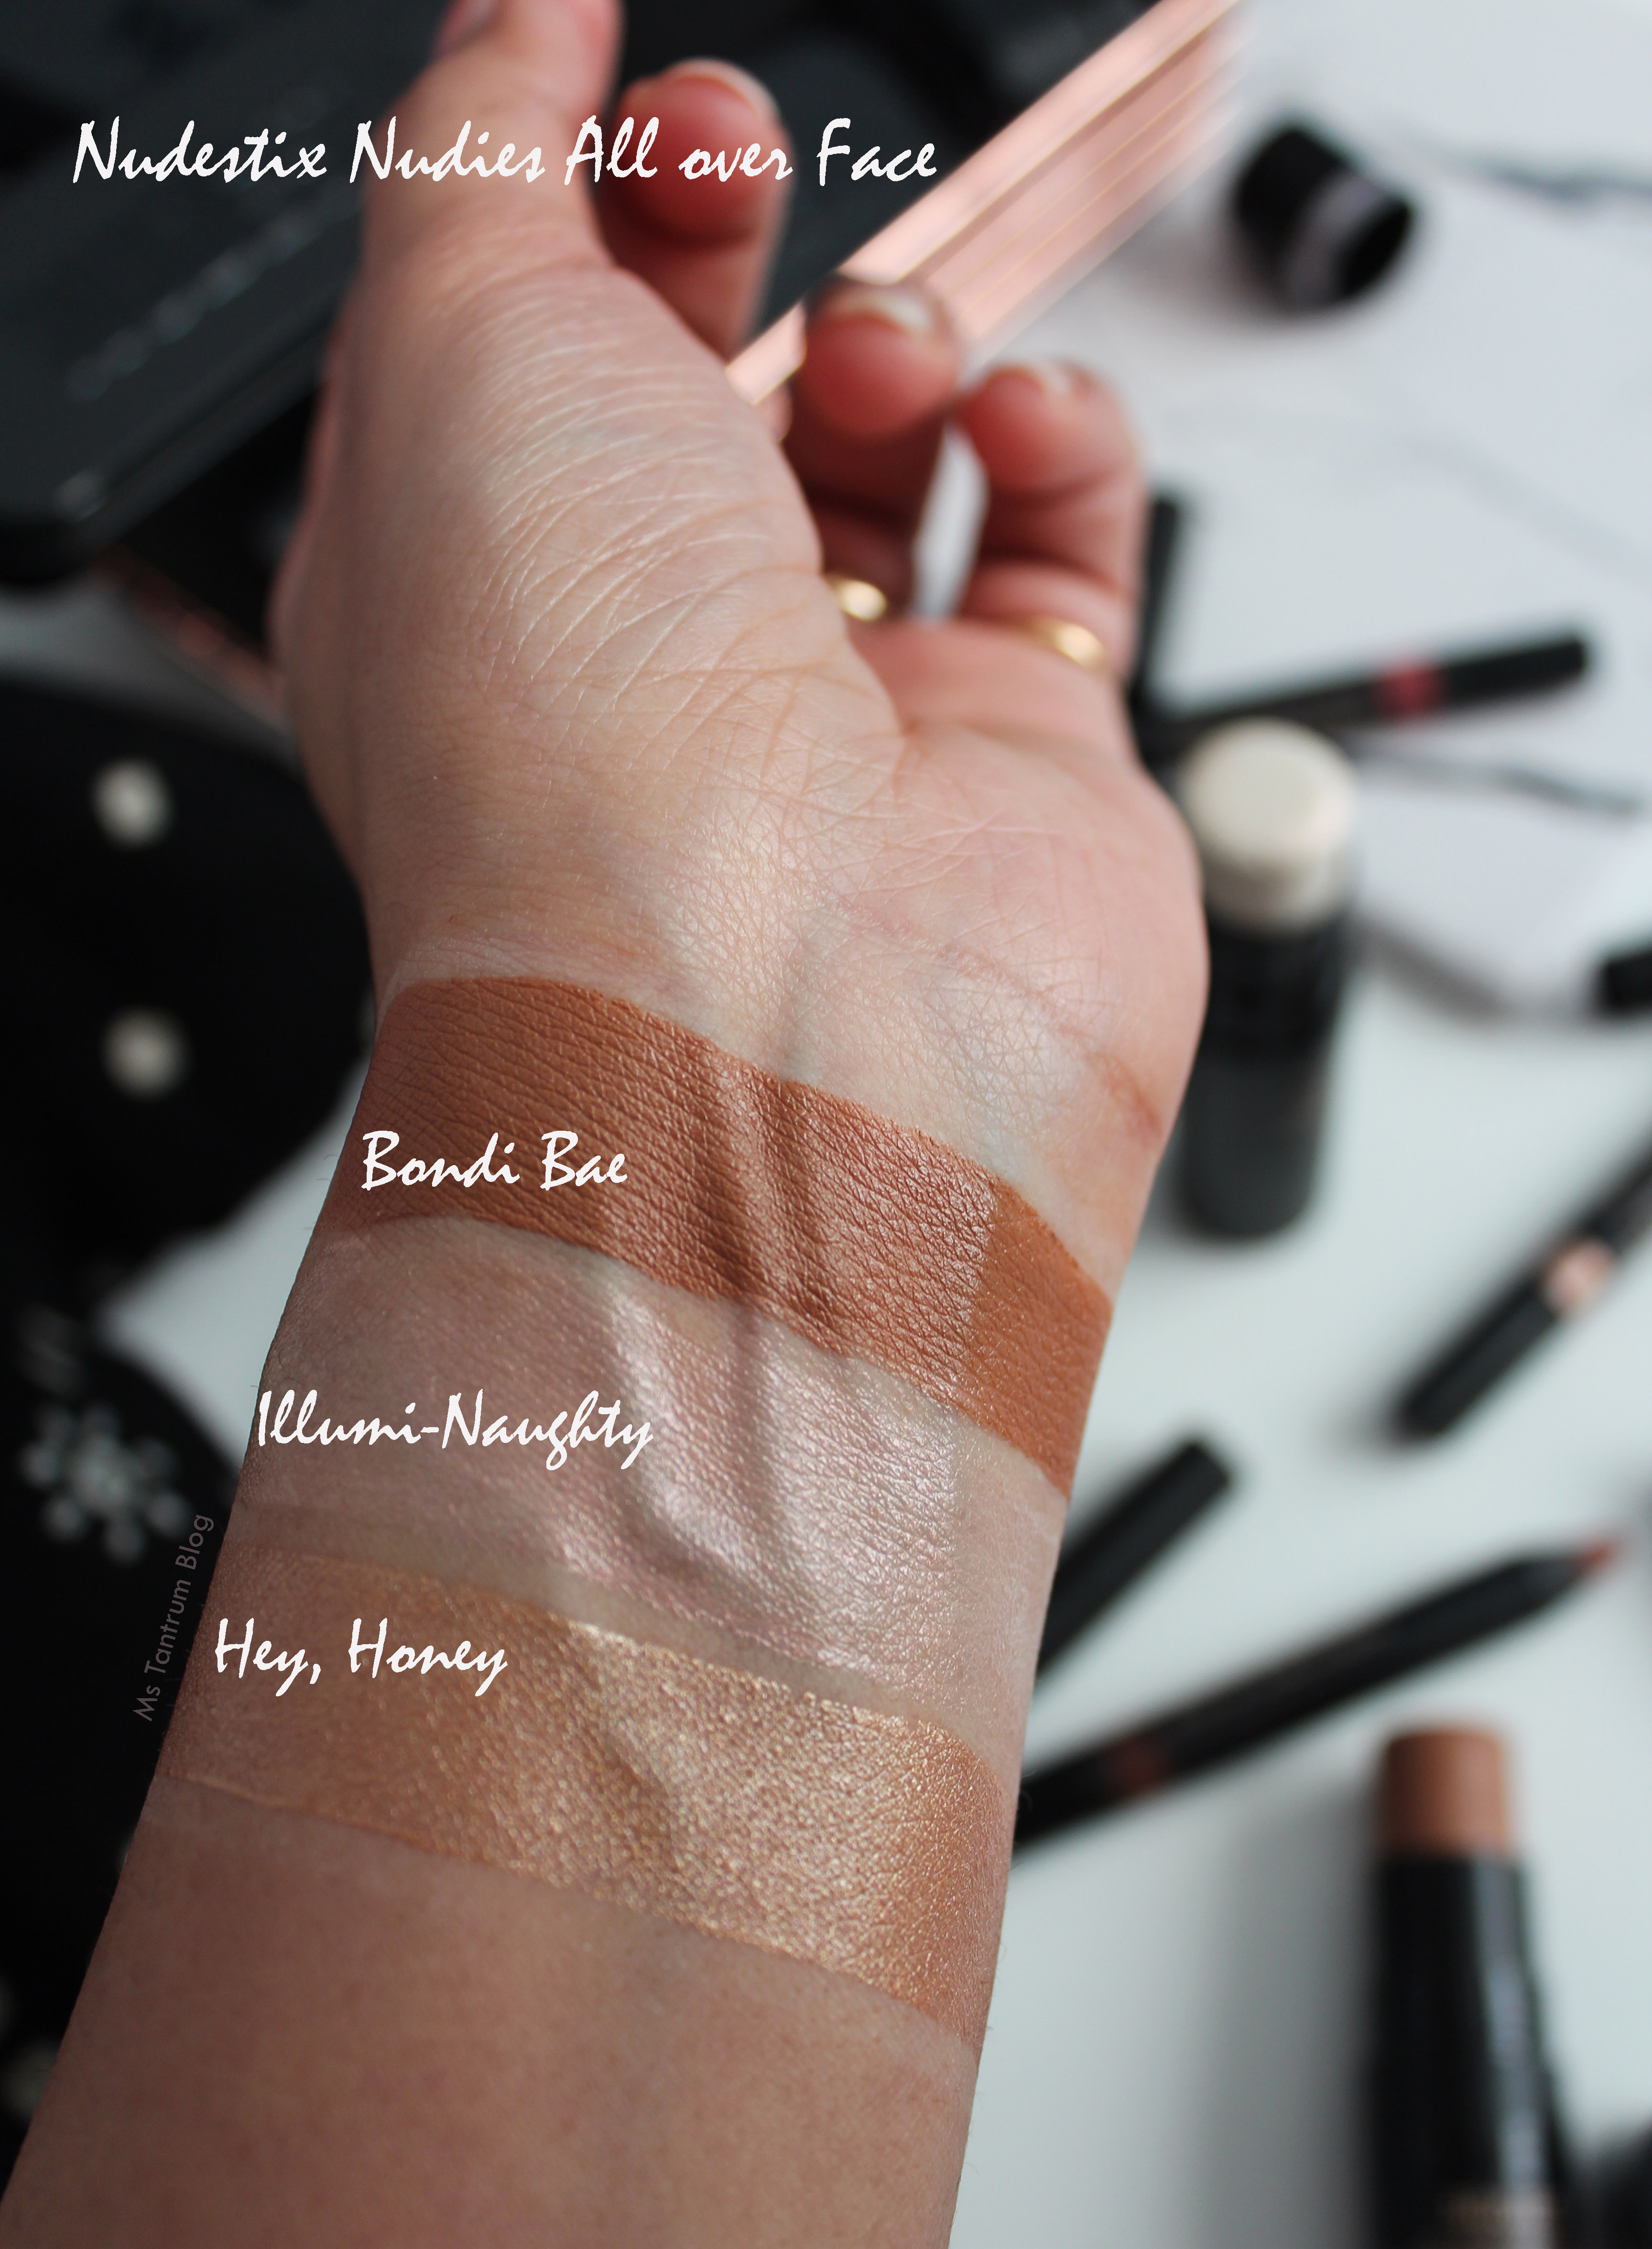 Nudestix Nudies All over Face Swatches - Ms Tantrum Blog